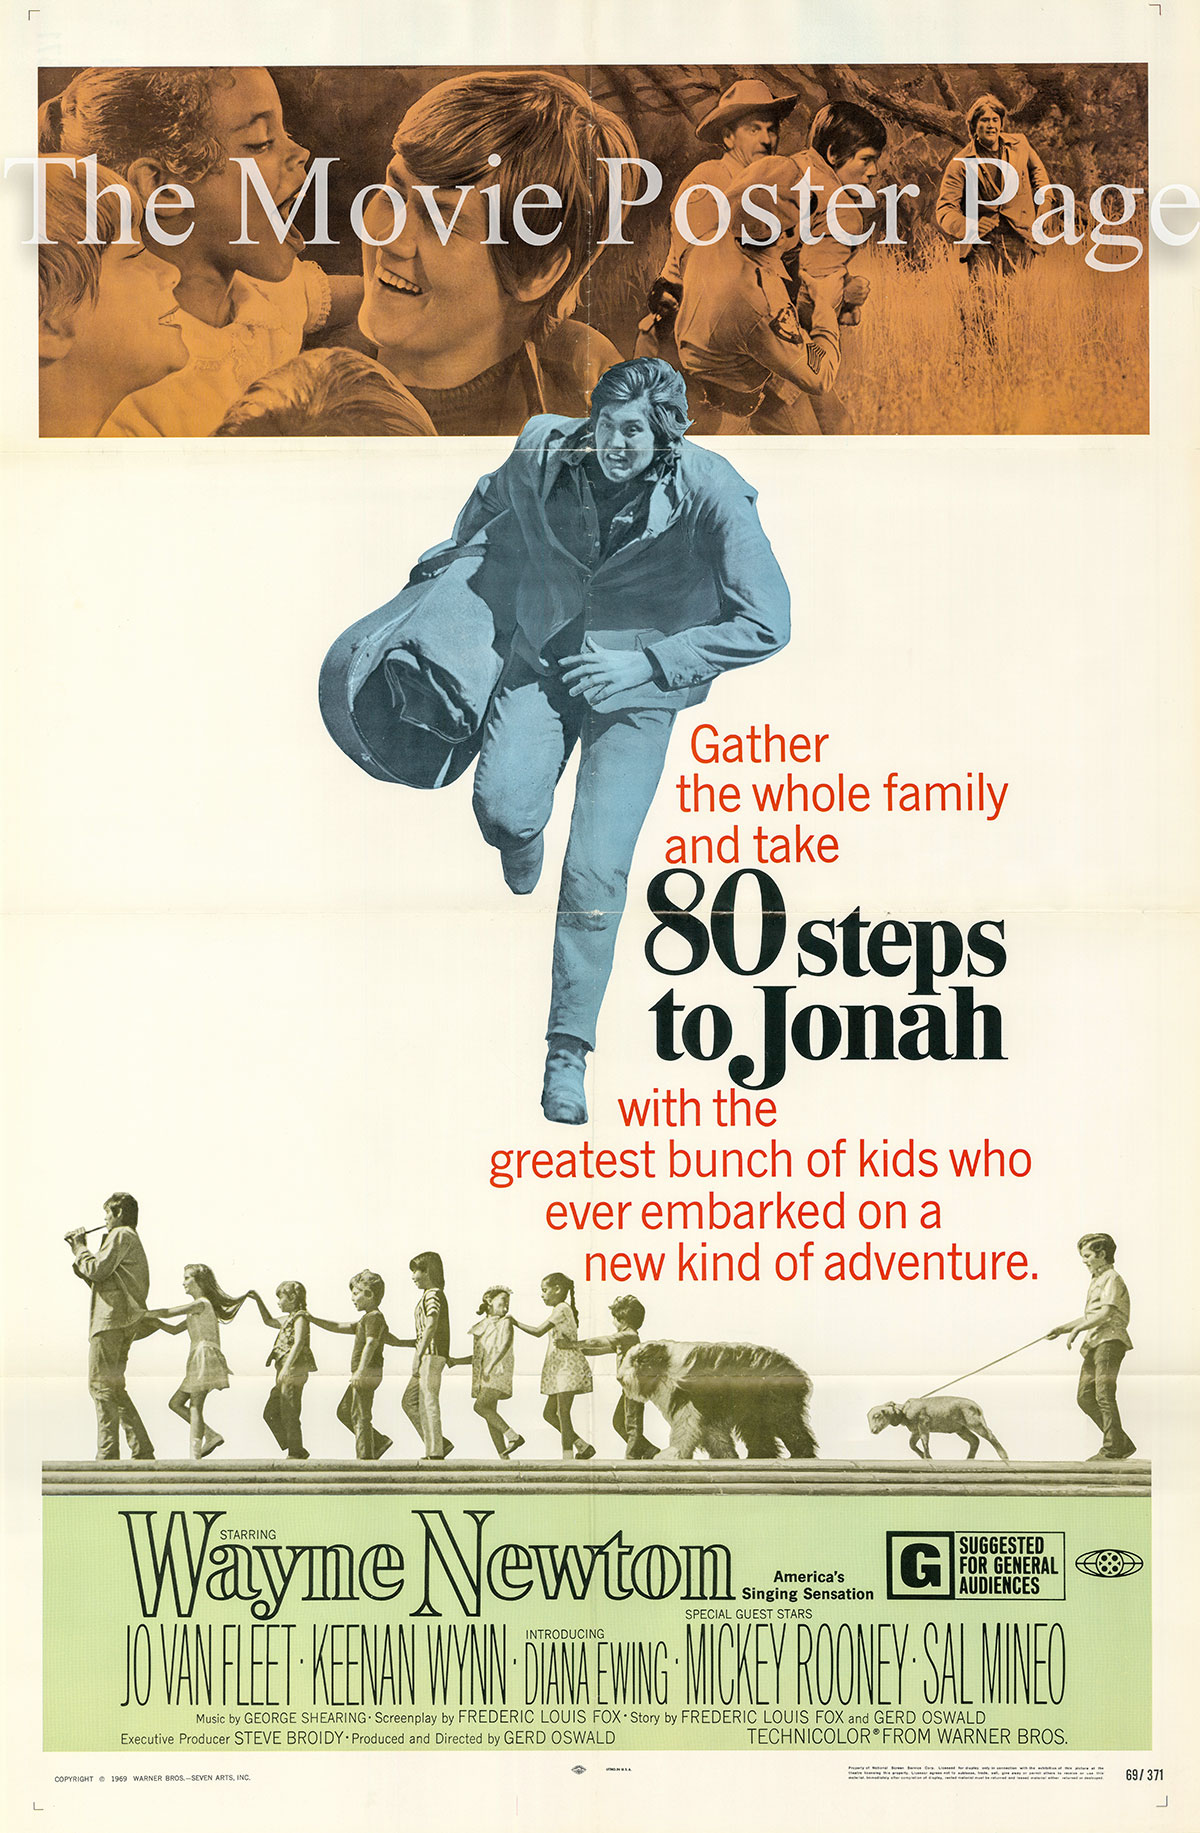 Pictured is a US one-sheet promotional poster for the 1969 Gerd Oswald film 80 Steps to Jonah starring Wayne Newton as Mark Jonah Winters.